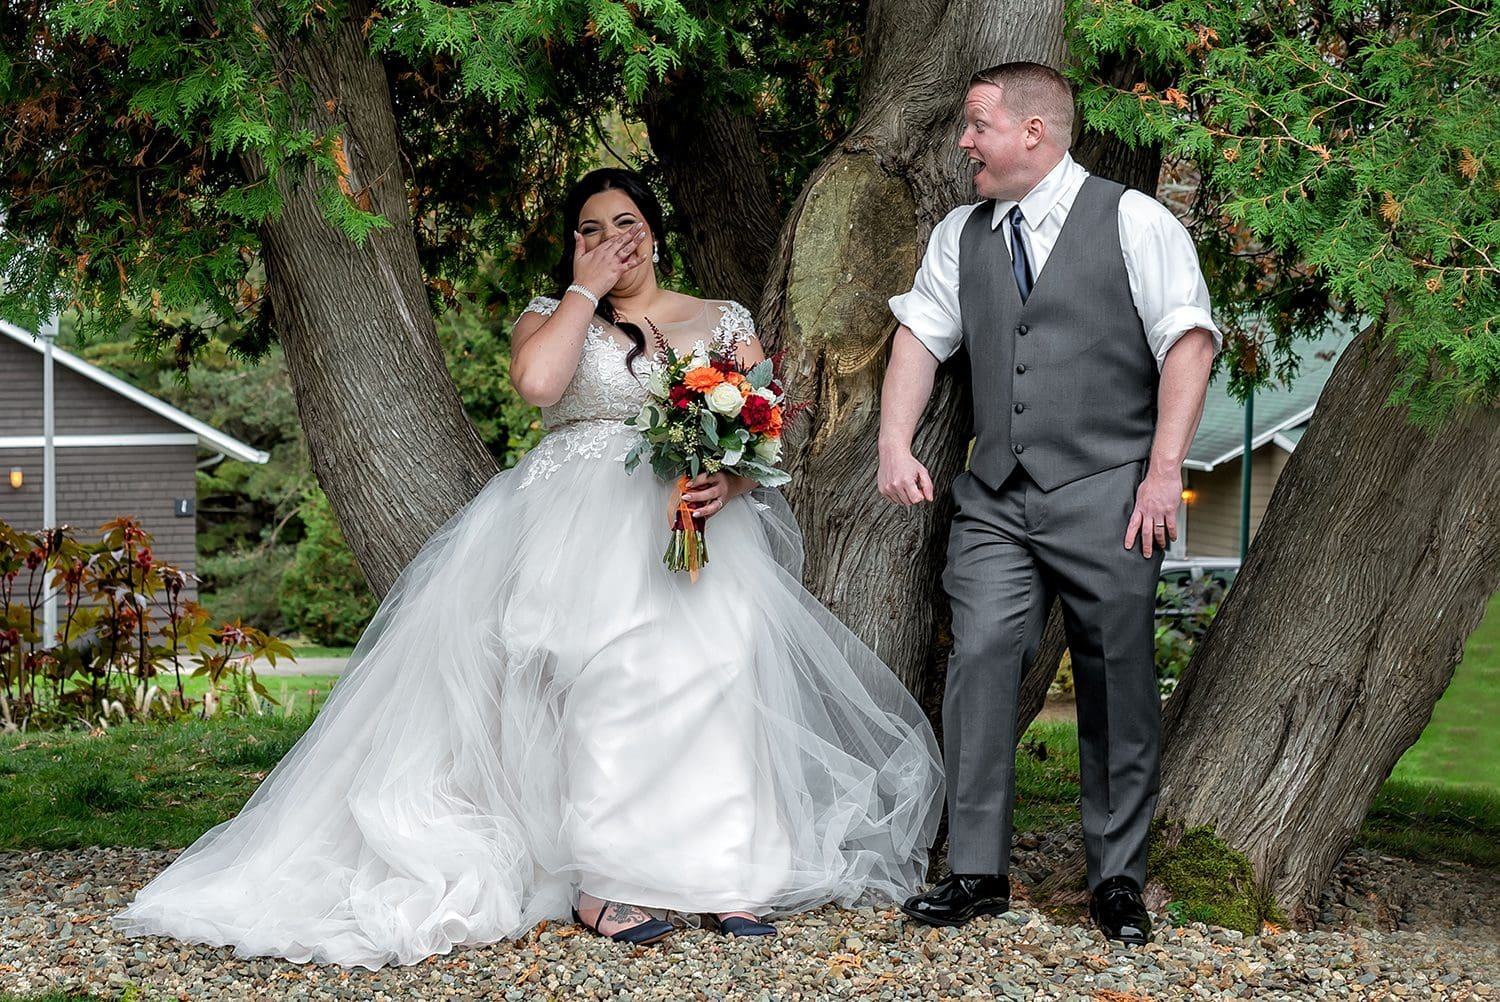 fun candid bride and groom photos taken by a tree during a wedding at the Digby Pines Resort